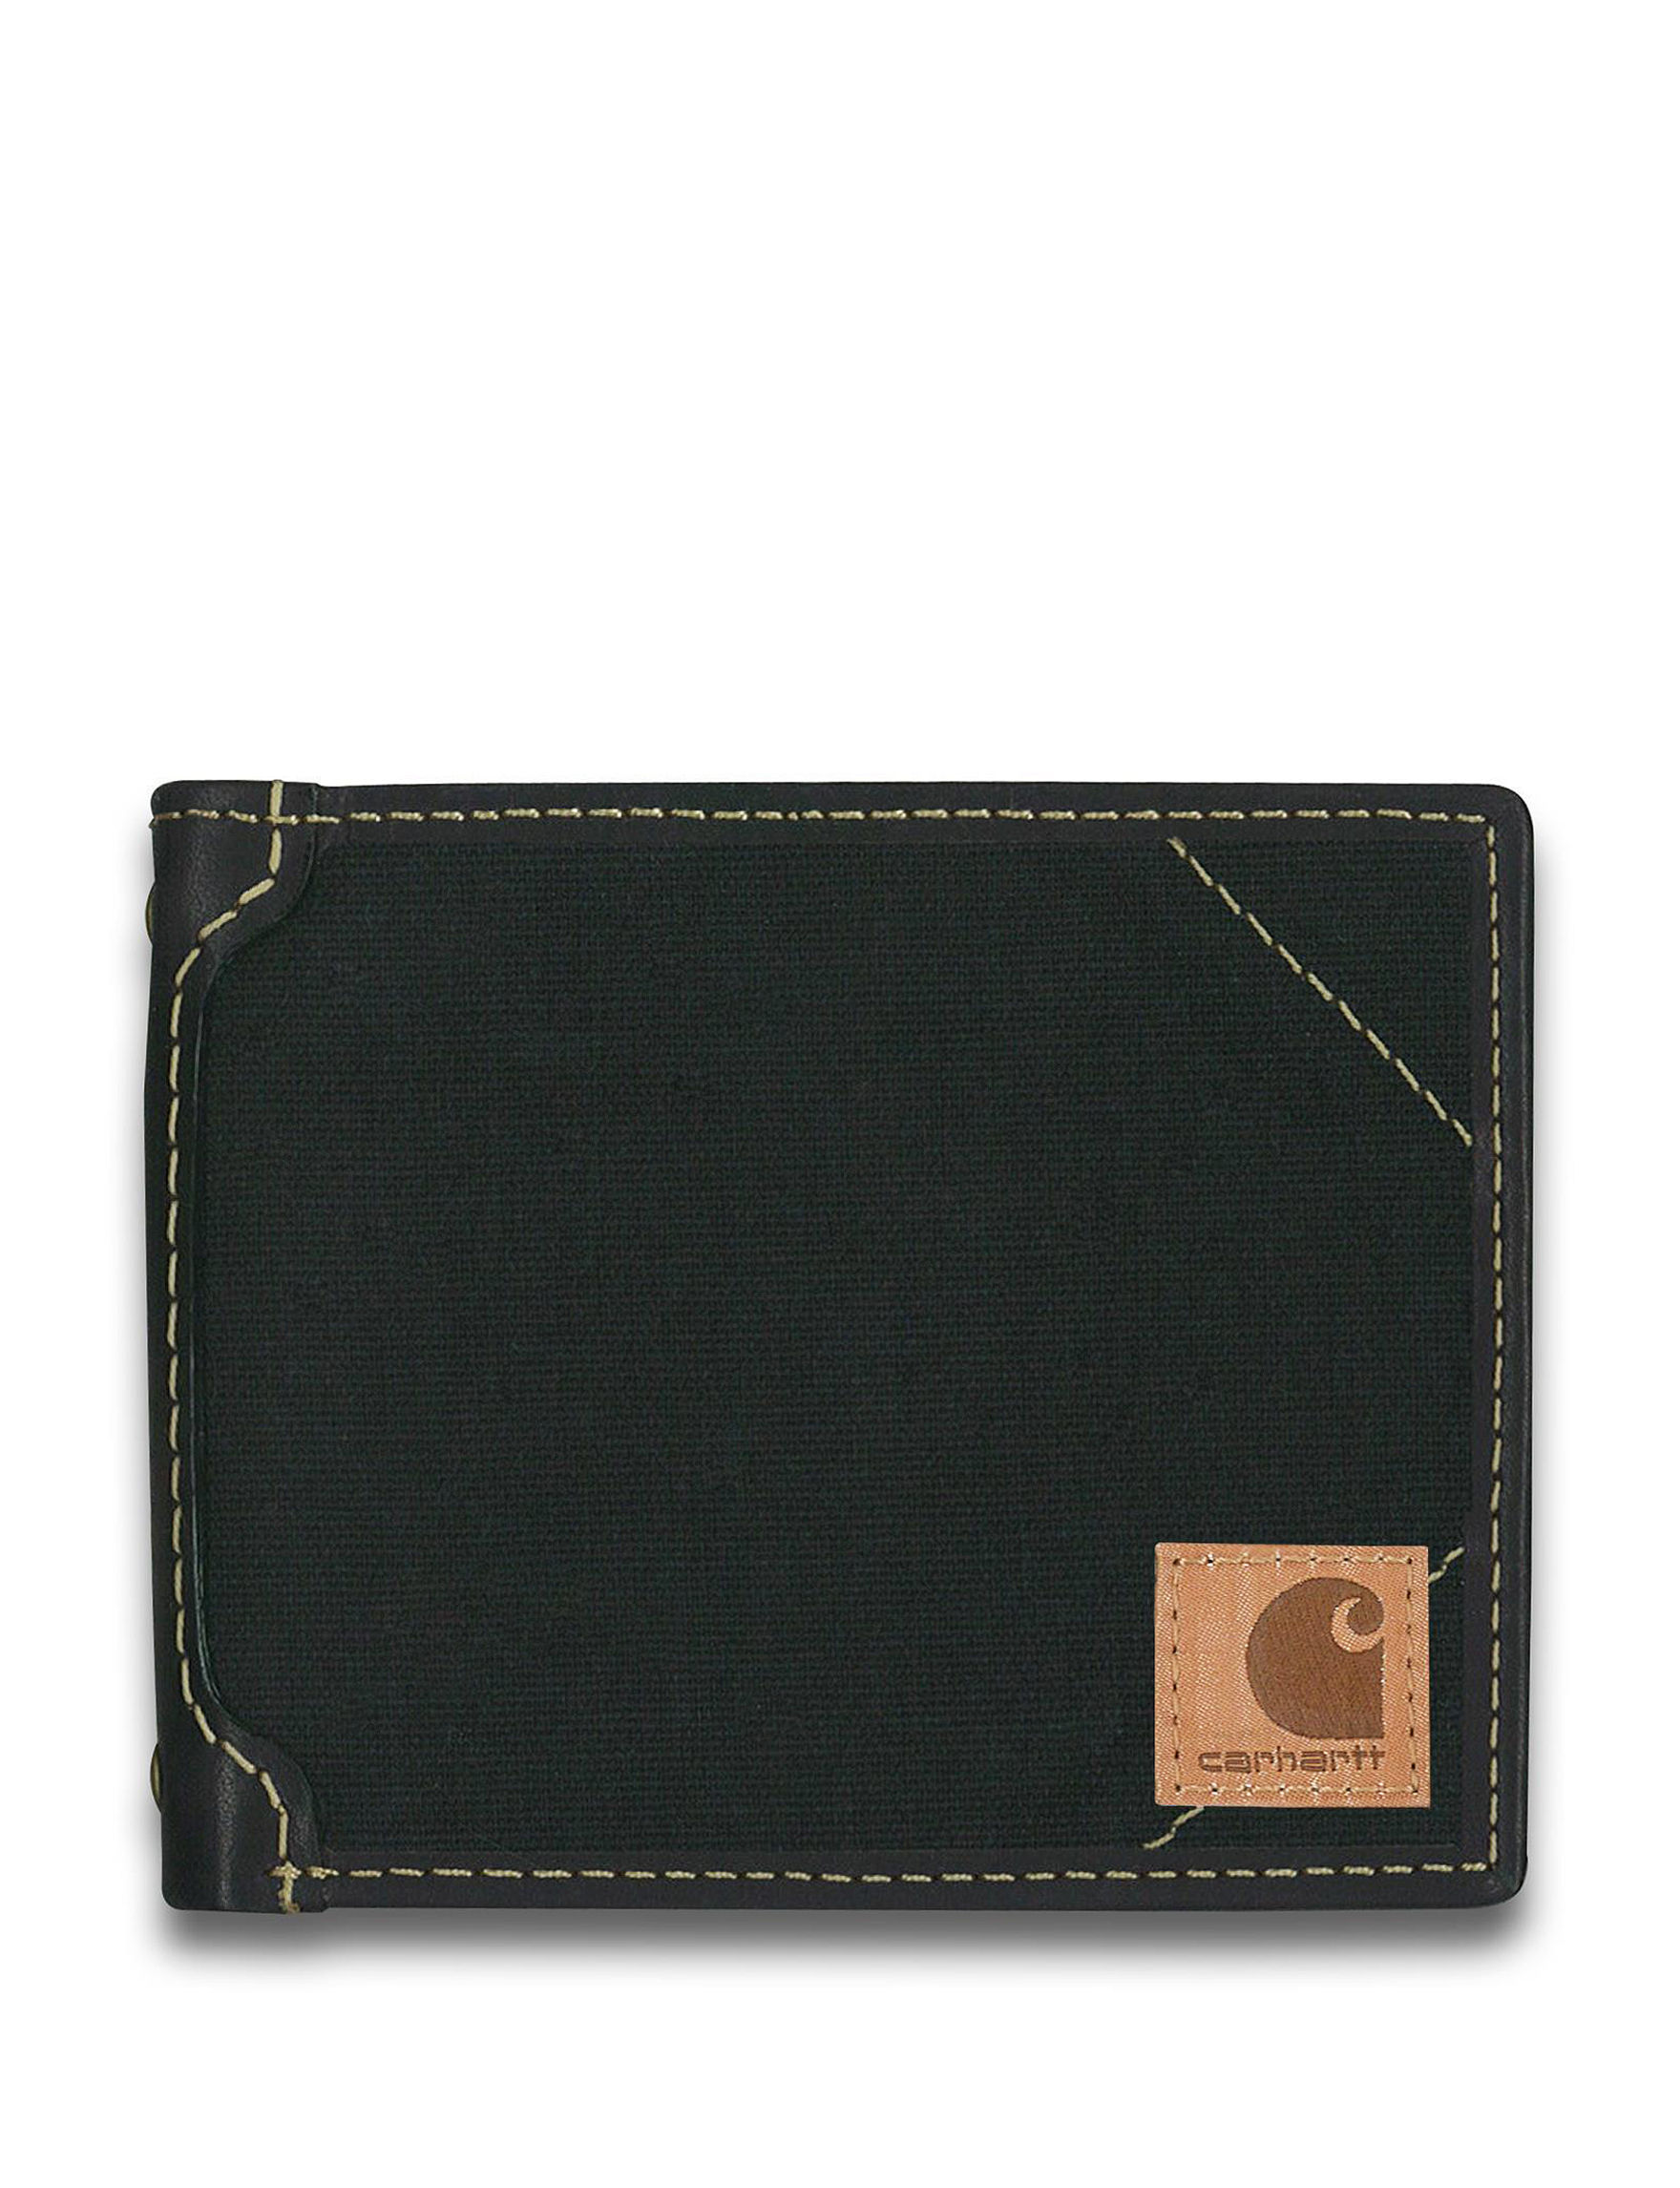 Carhartt Black Bi-fold Wallets